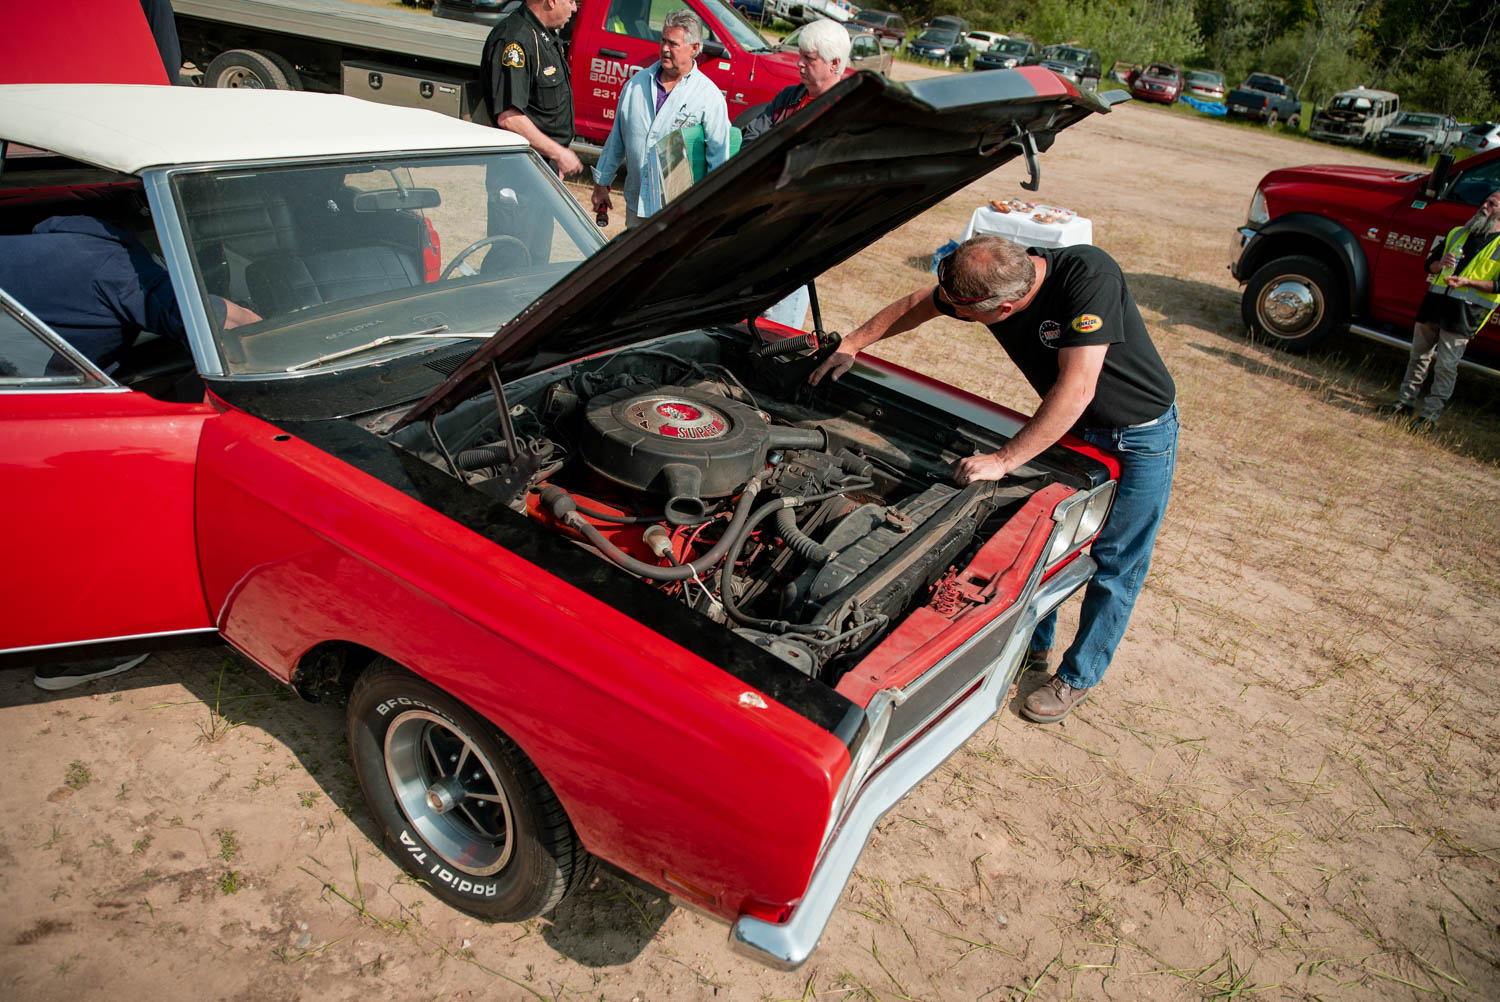 1969 Plymouth GTX engine bay